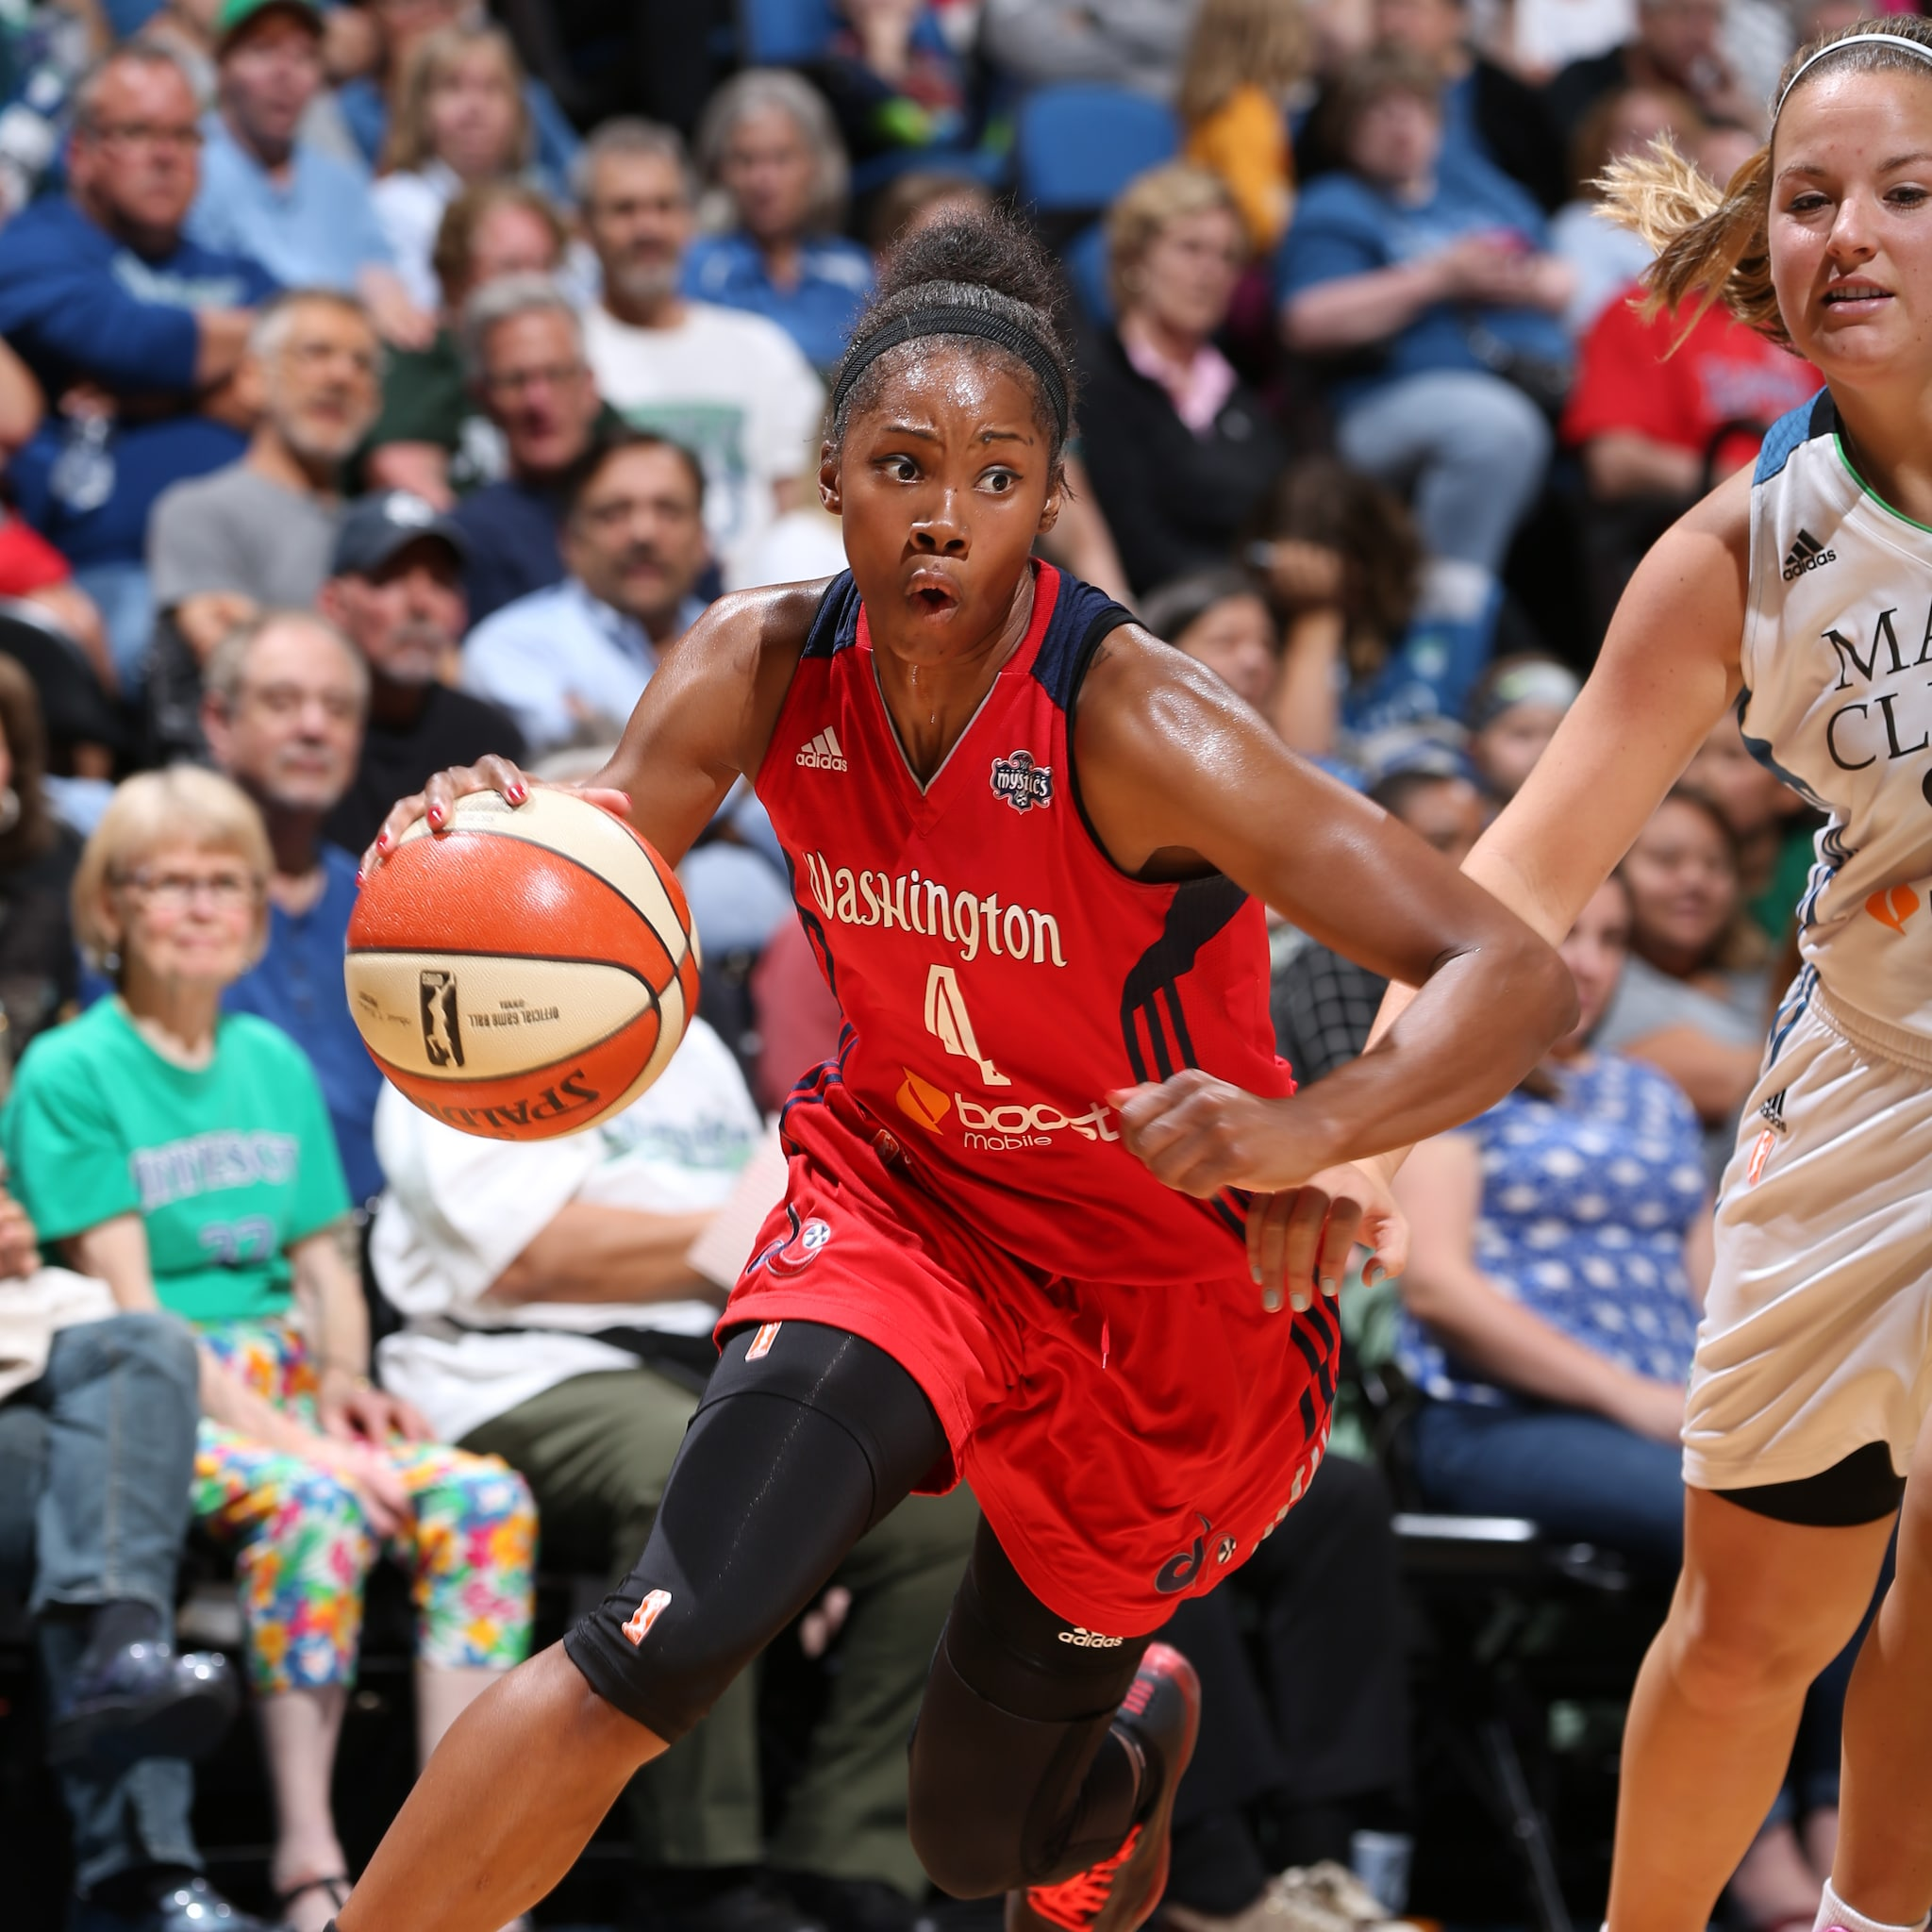 Minnesota native Tayler Hill  played well for the Mystics, finishing with 10 points and three rebounds in 21 minutes off the bench.